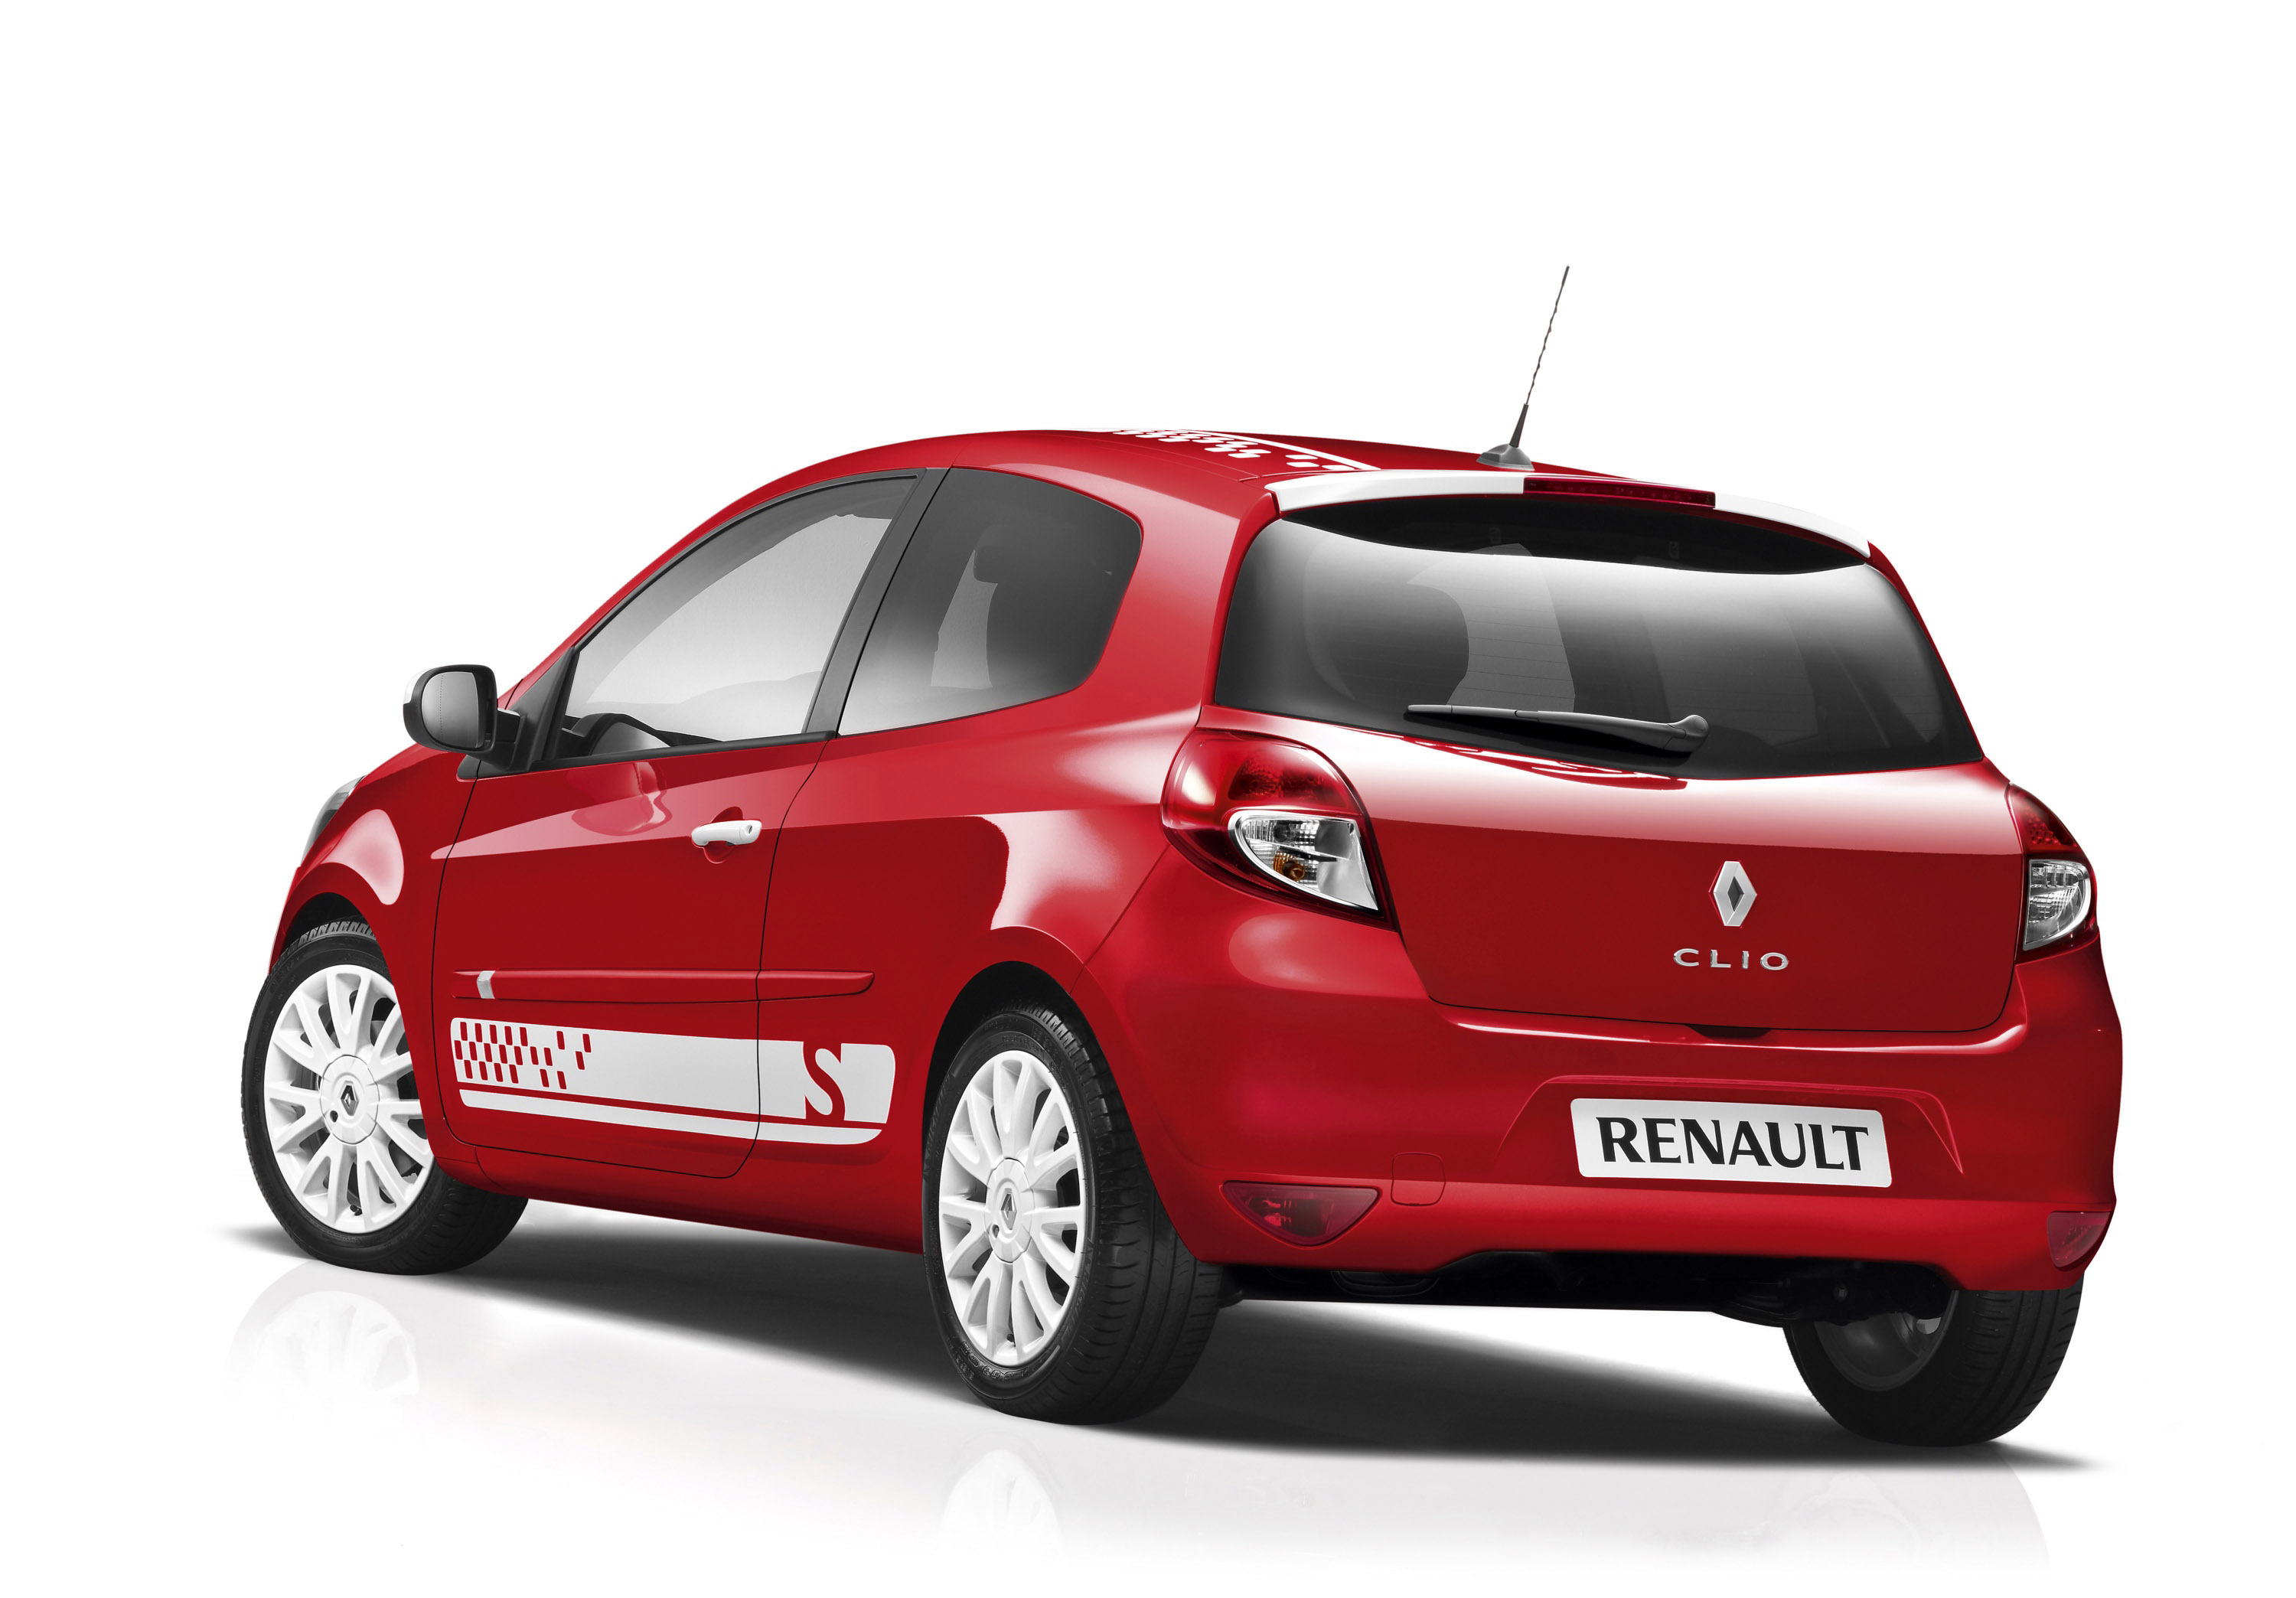 Renault Resurrects The Mighty Clio S For The Model Year 2010